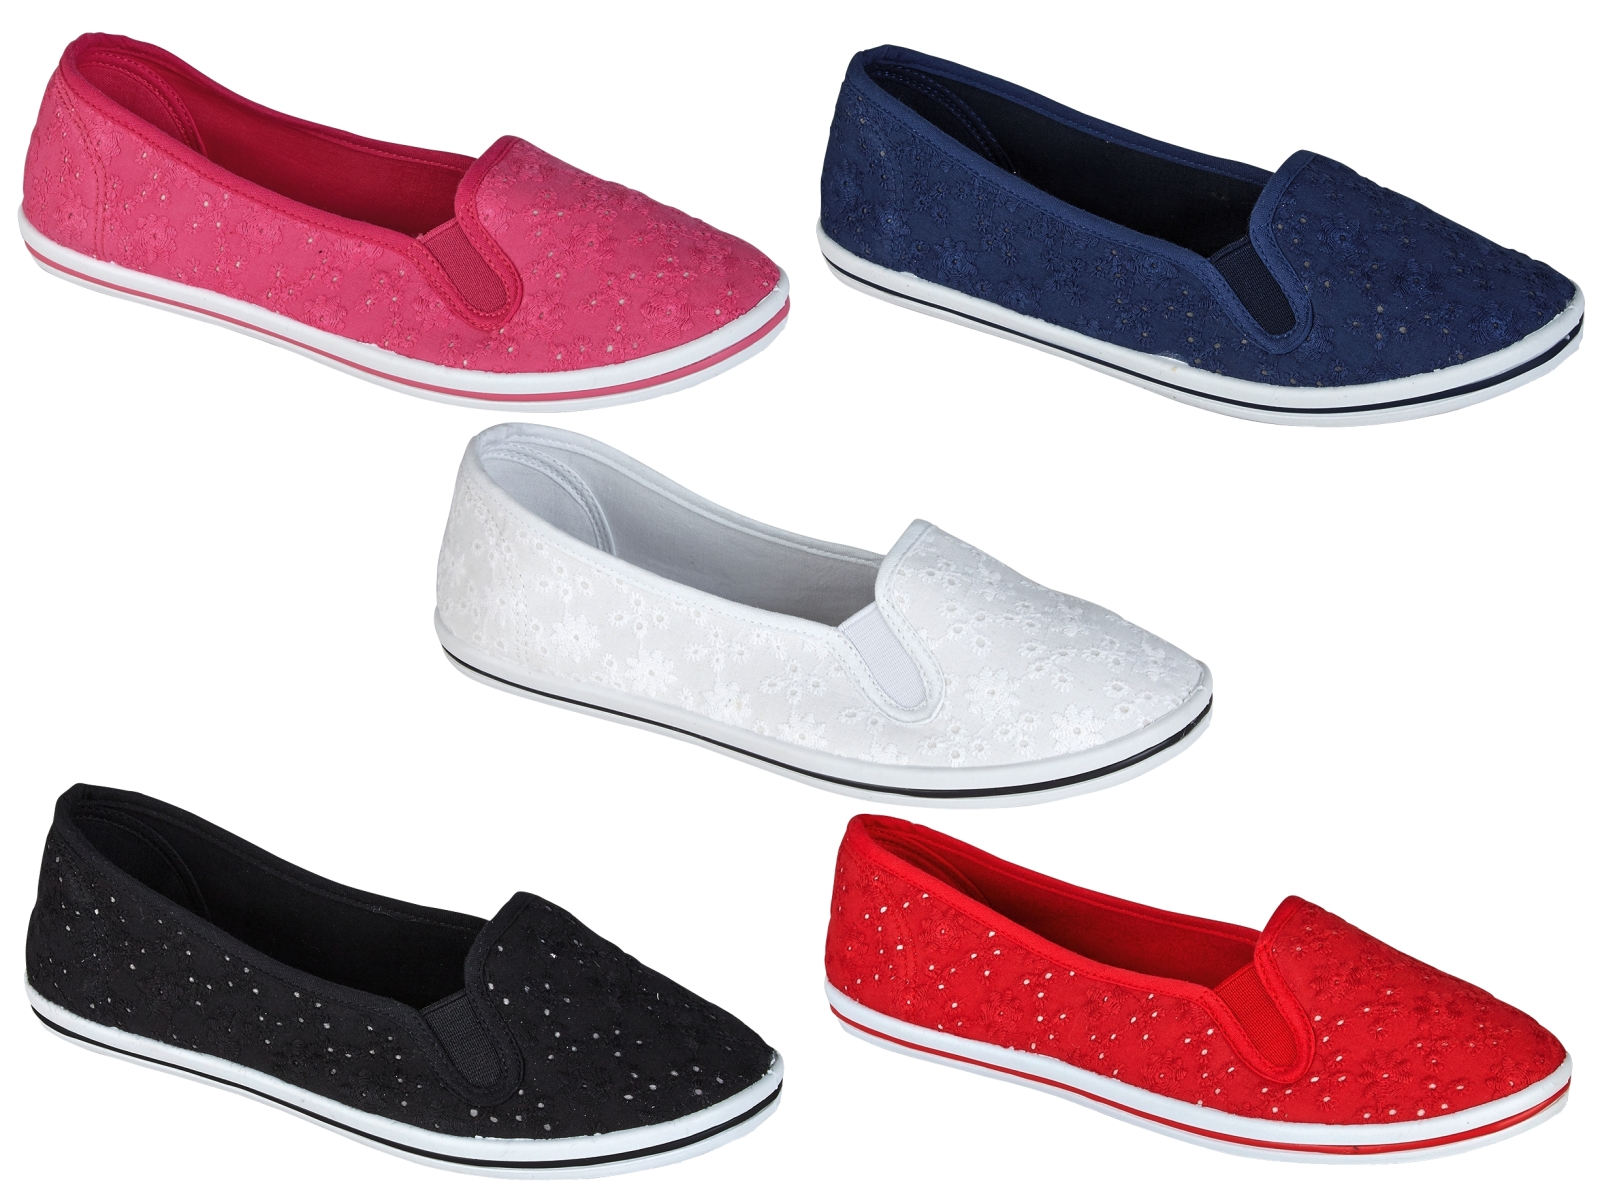 atrociouslf.gq offers , wholesale canvas shoes products. About 61% of these are casual shoes, 4% are % cotton fabric, and 1% are sandals. A wide variety of wholesale canvas shoes options are available to you, such as autumn, spring, and winter.